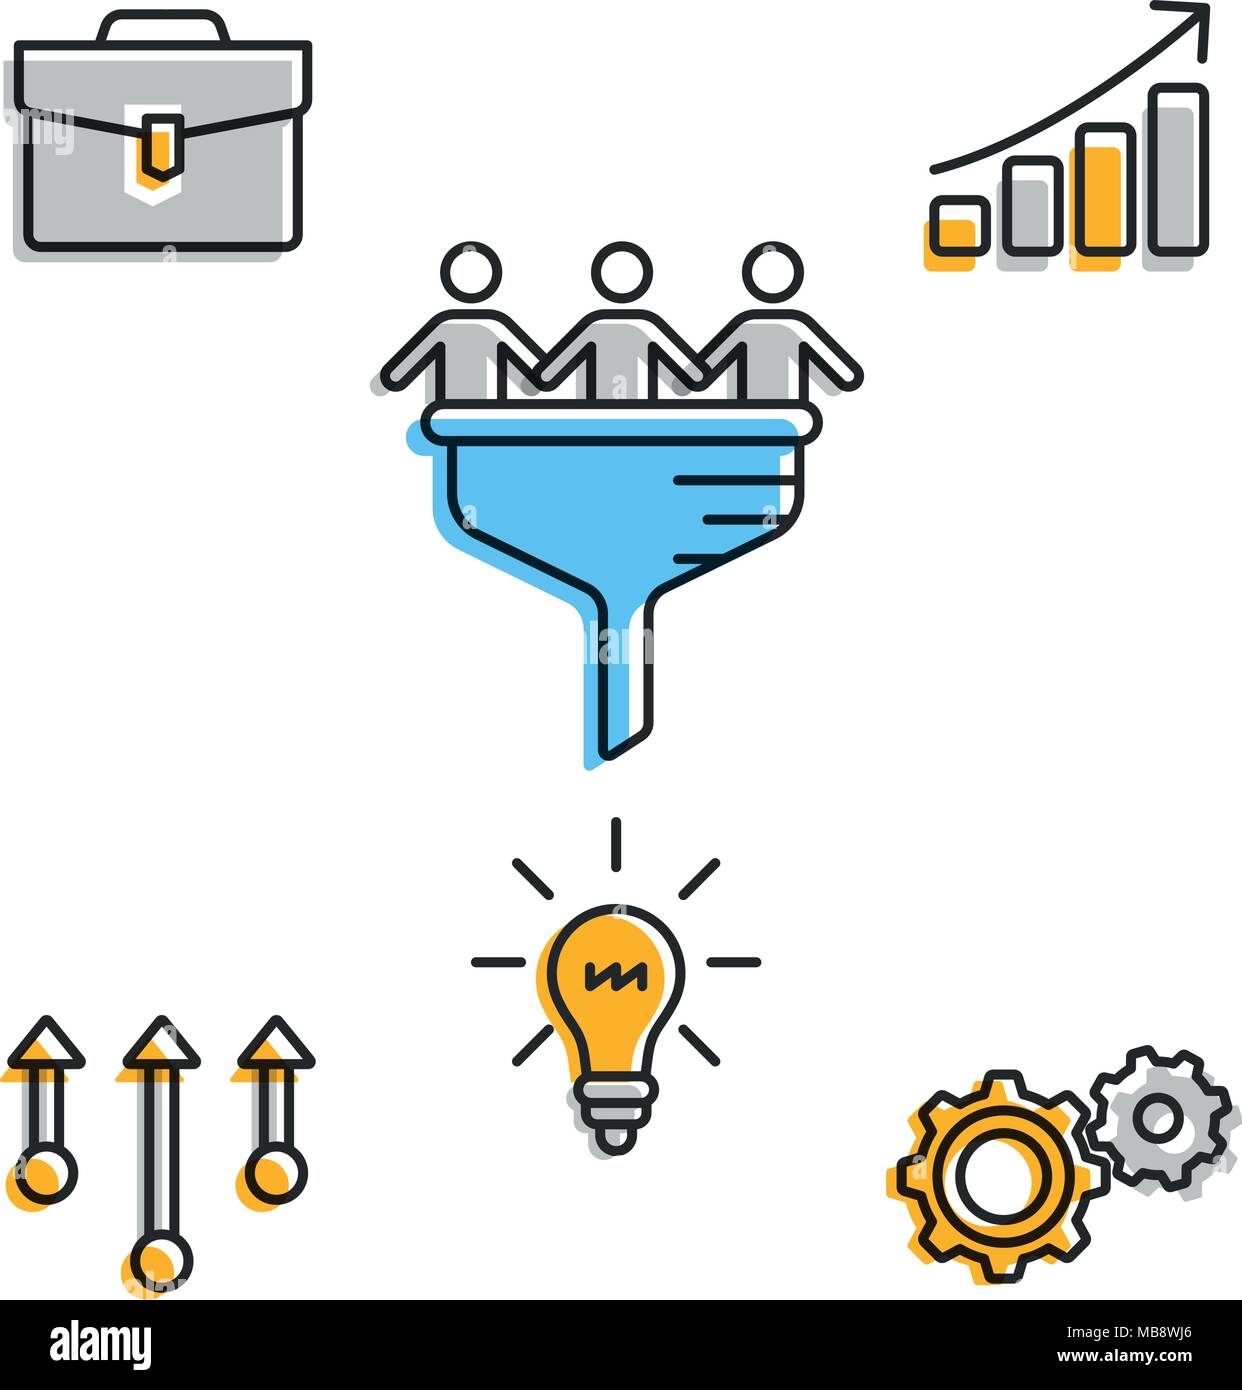 Icons for business team in progress - Stock Vector